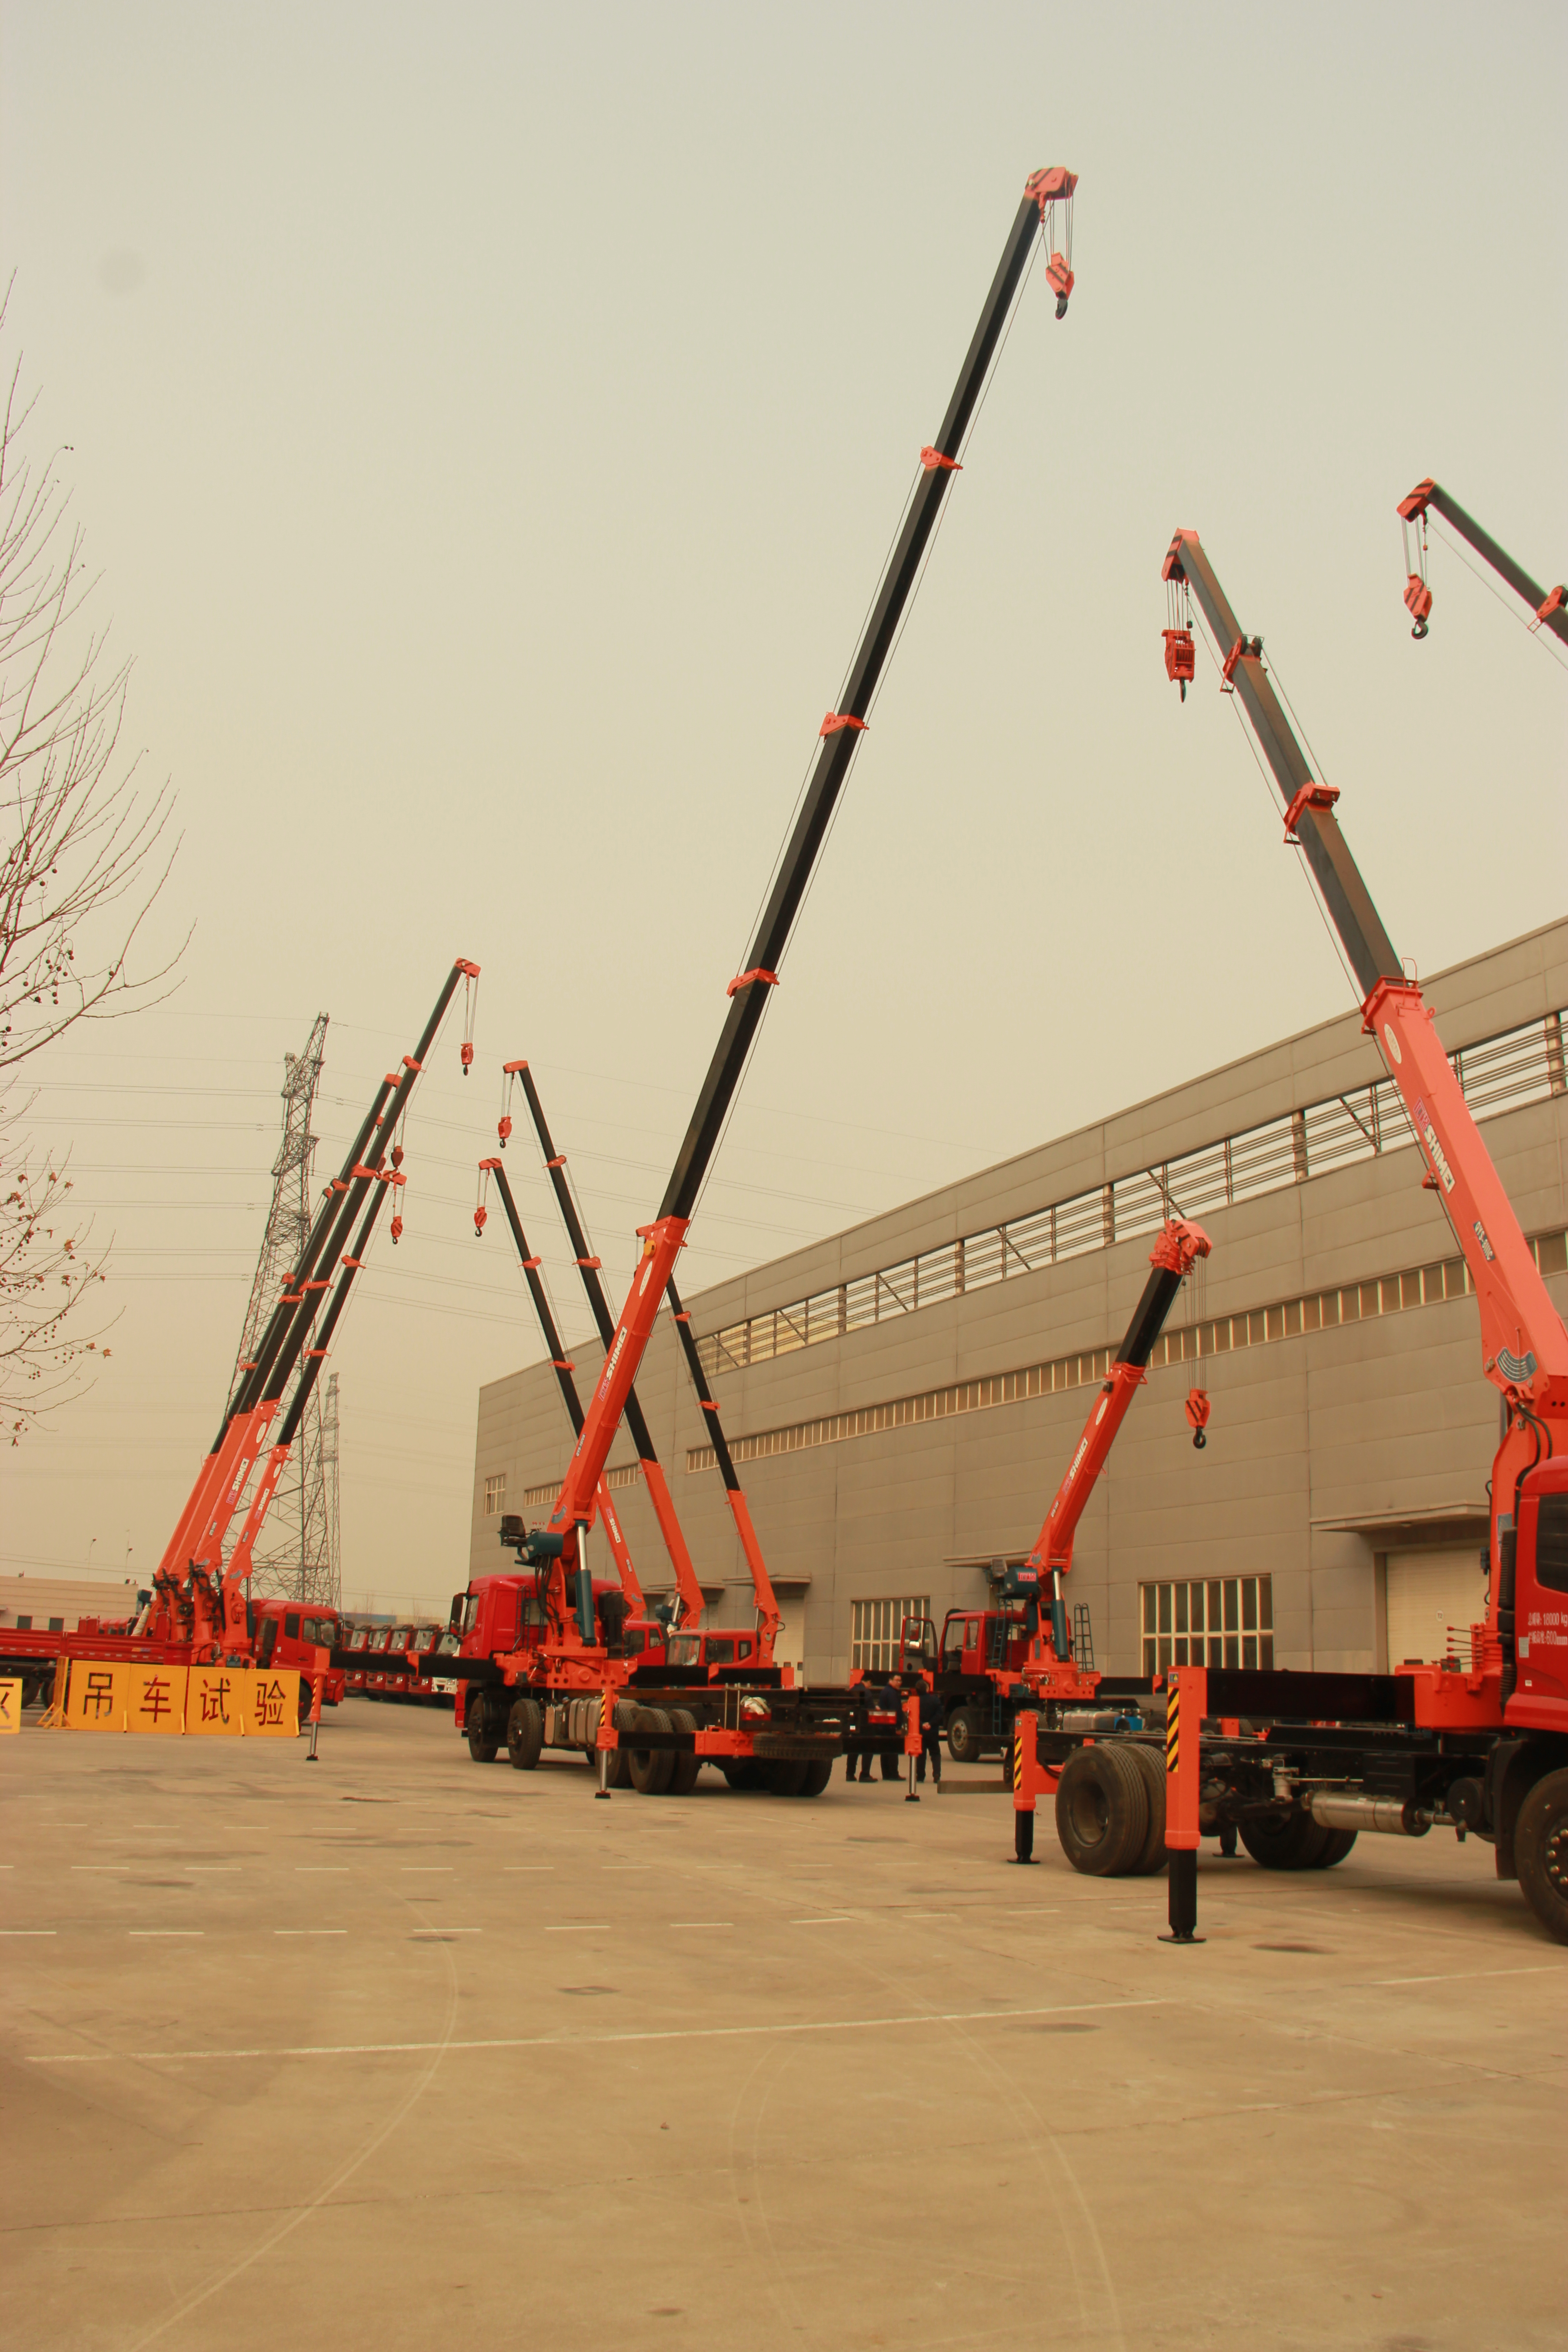 Qys-8iv 5 Telescopic Boomed 8 Tons Hydraulic Loader Crane